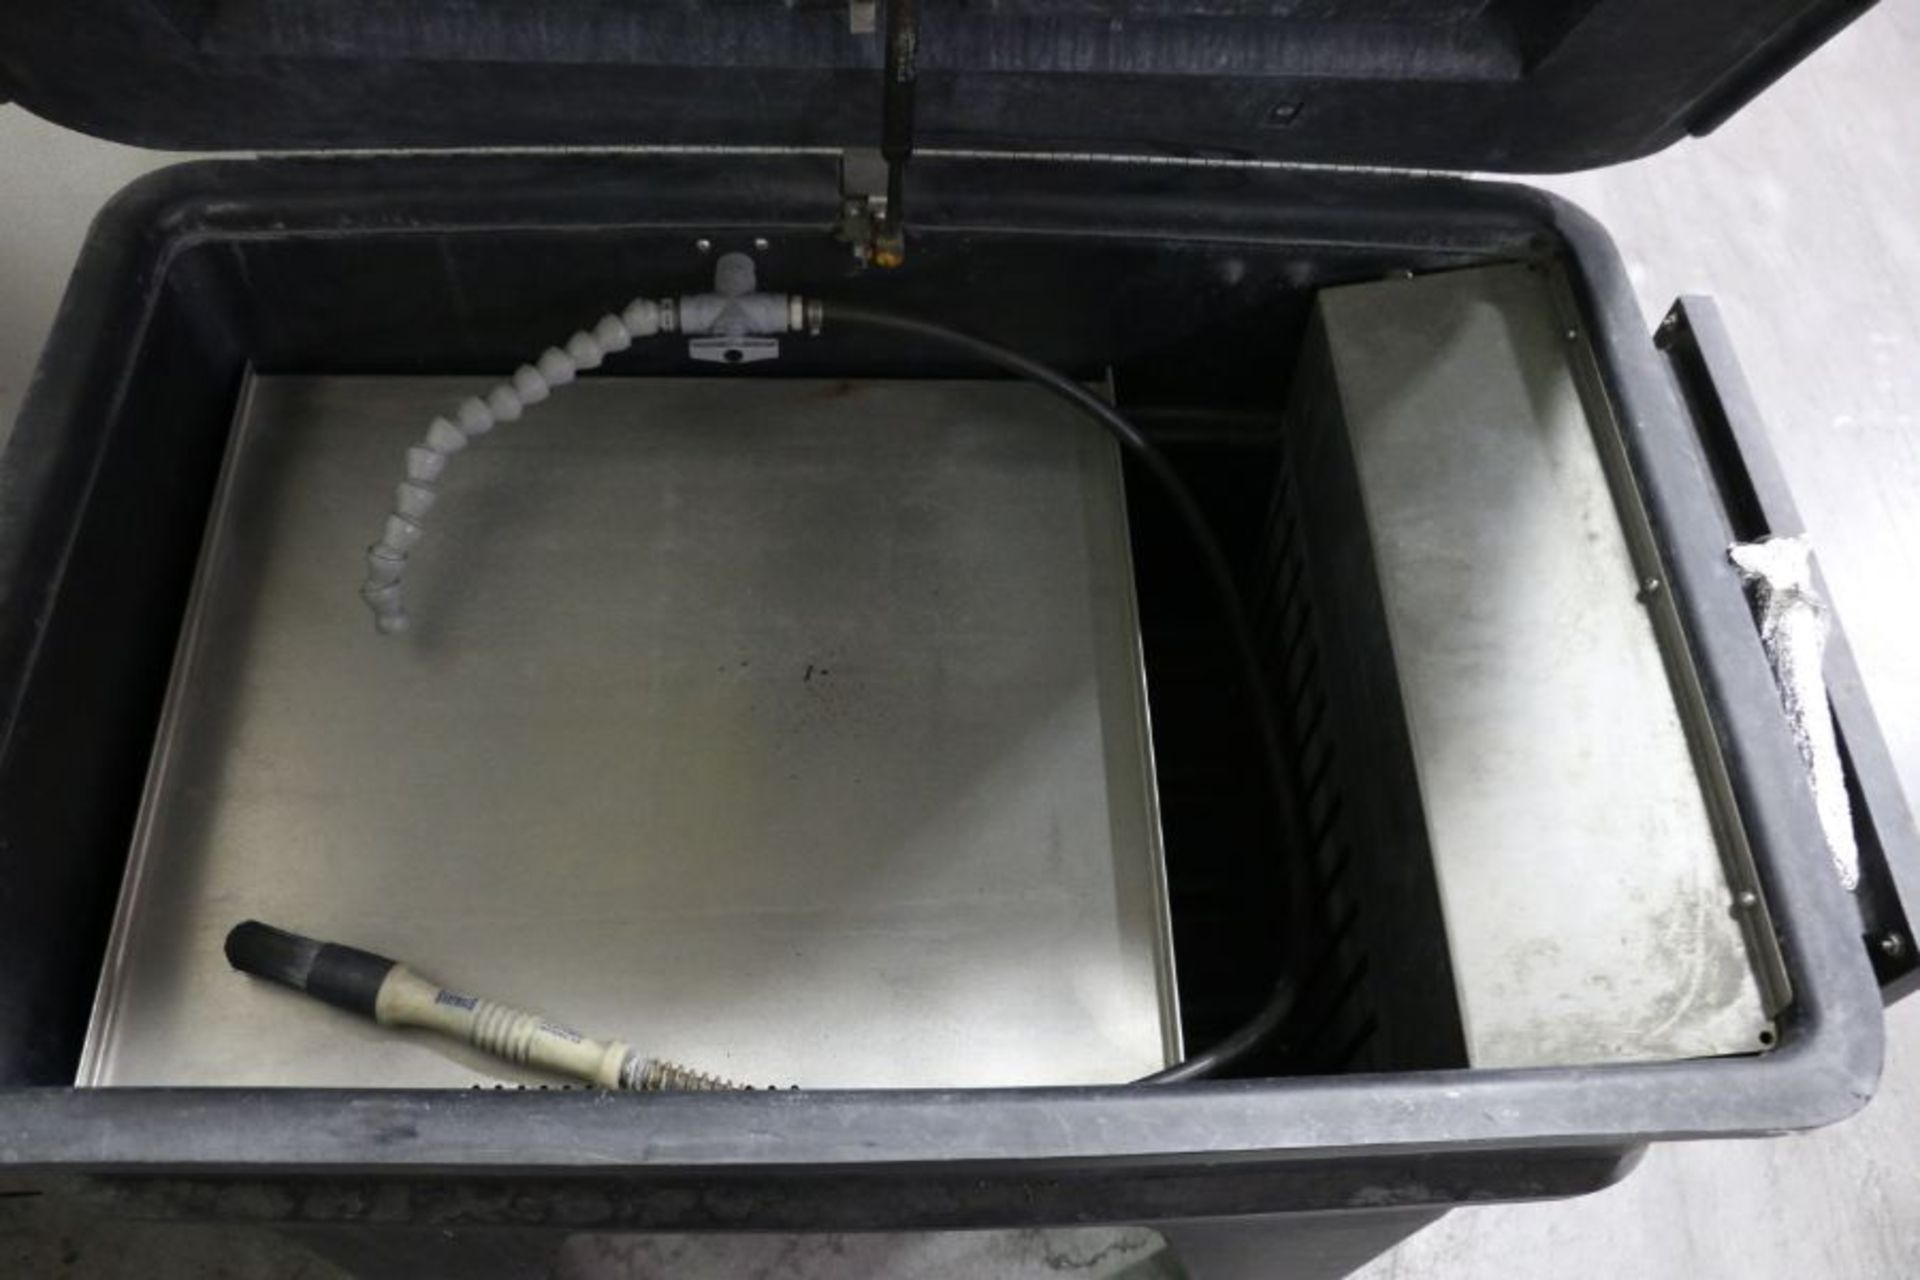 Lot 860 - Graymills PH822-A Parts Washer